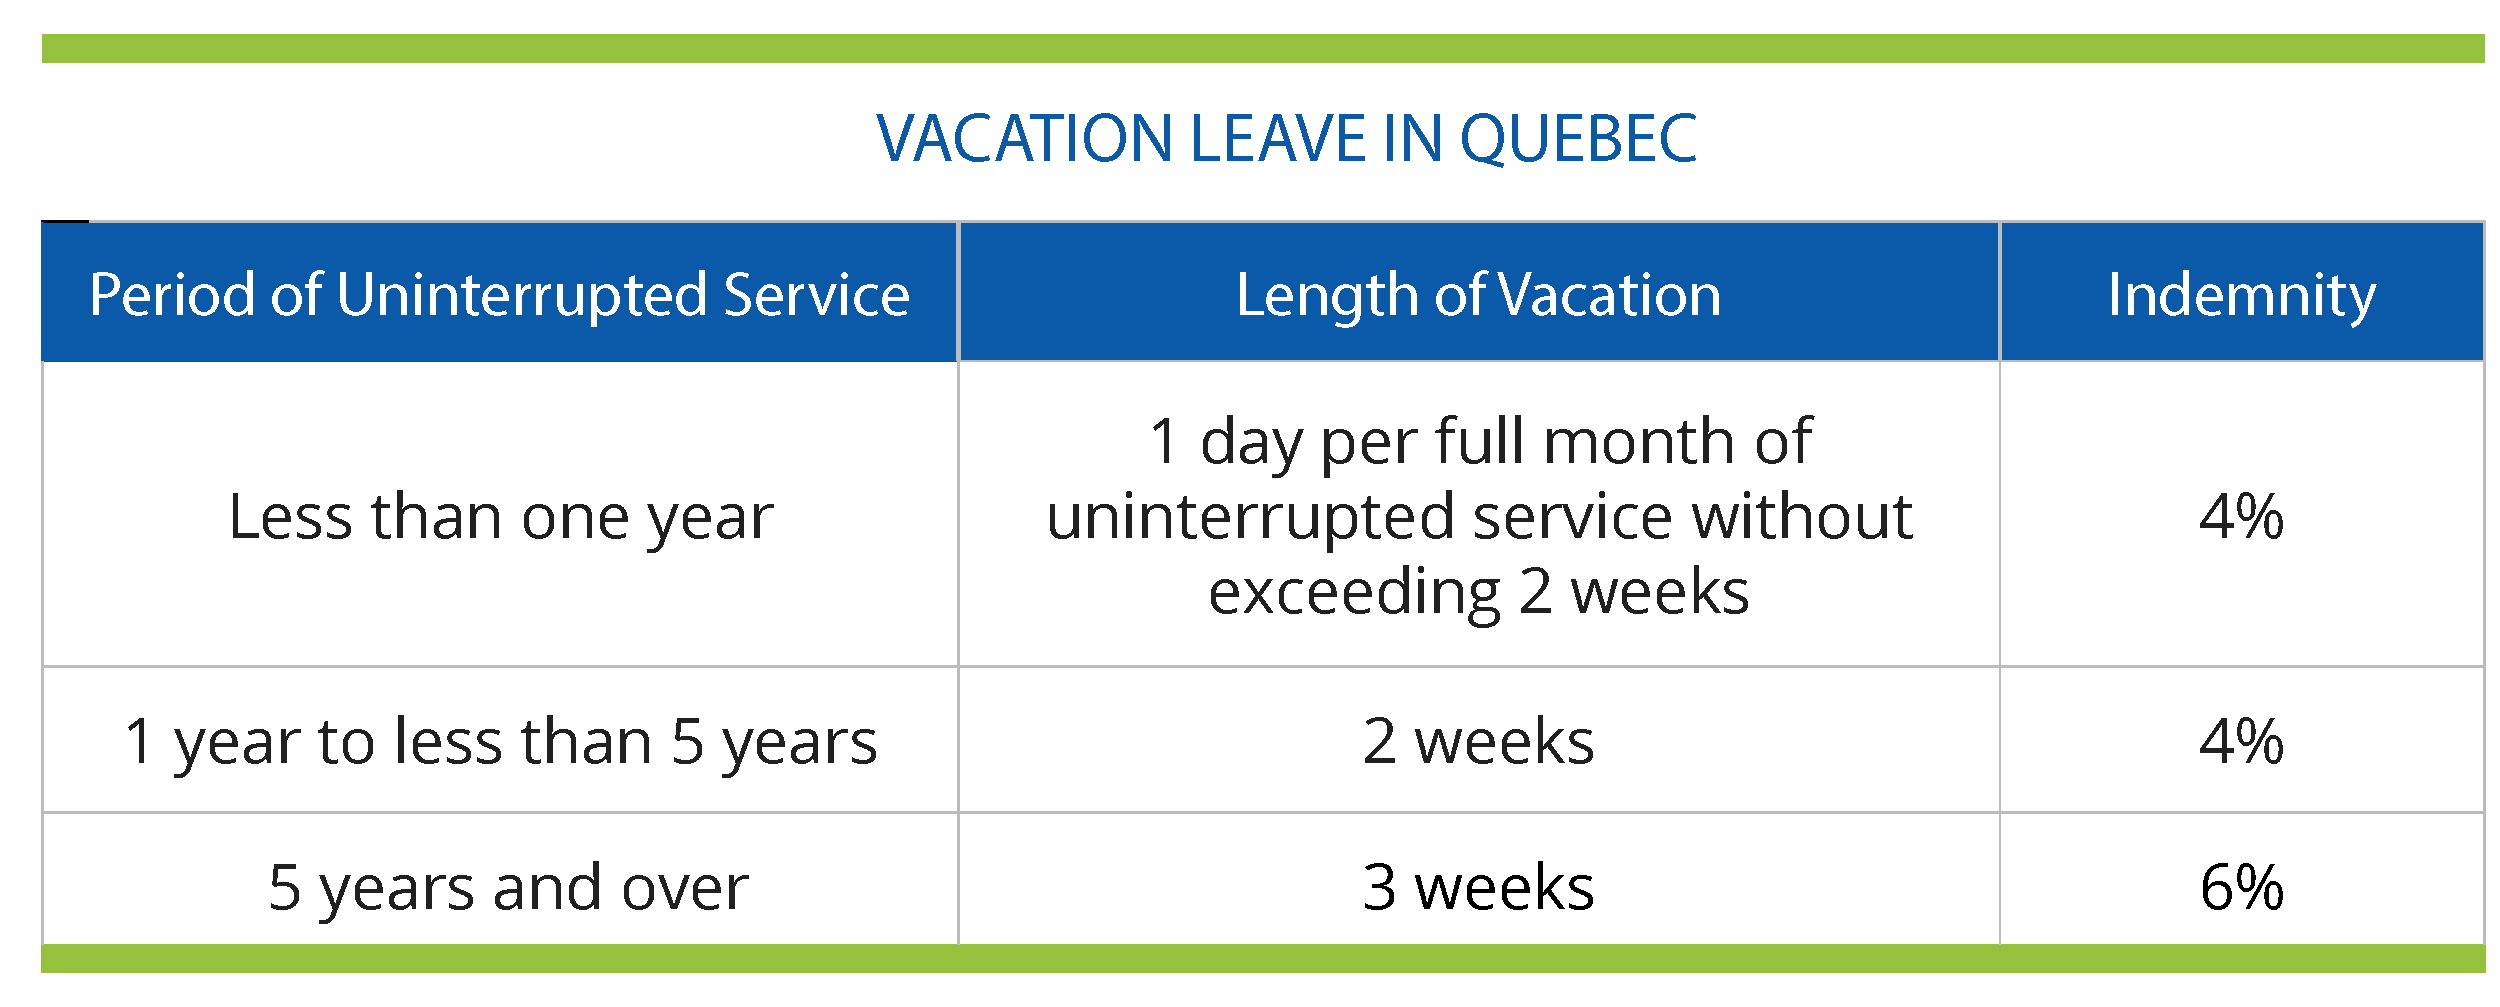 Vacation Leave in Quebec